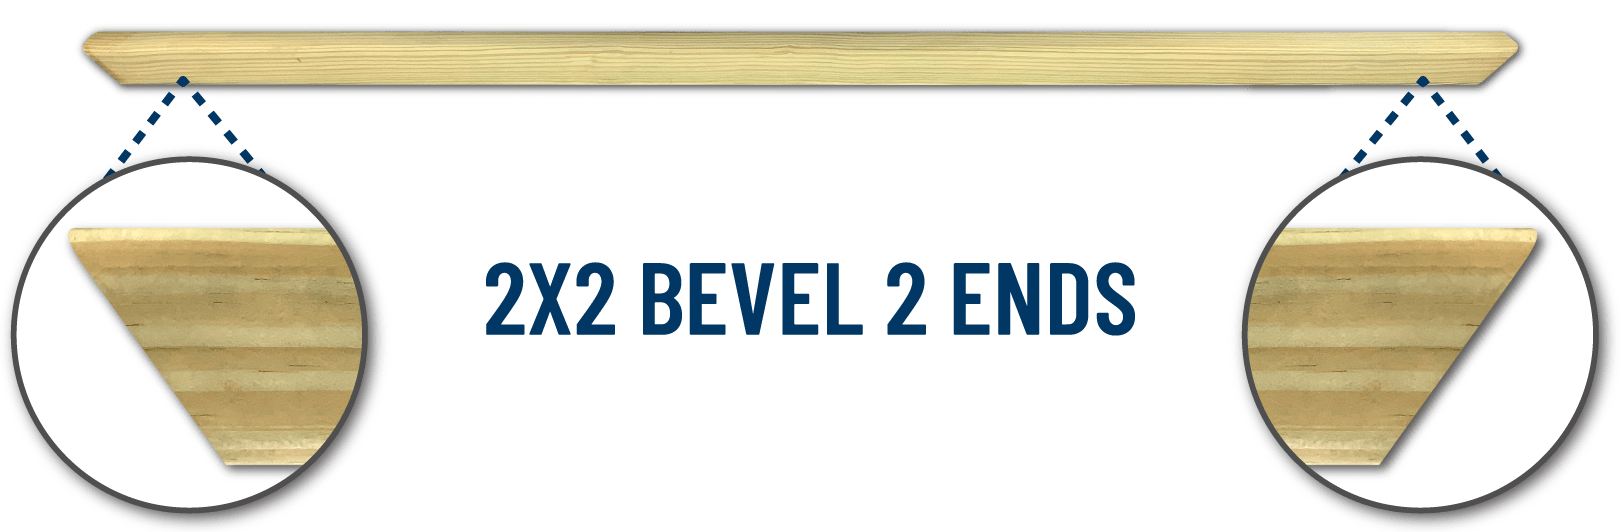 End-Breakout-Bevel-Two-Ends